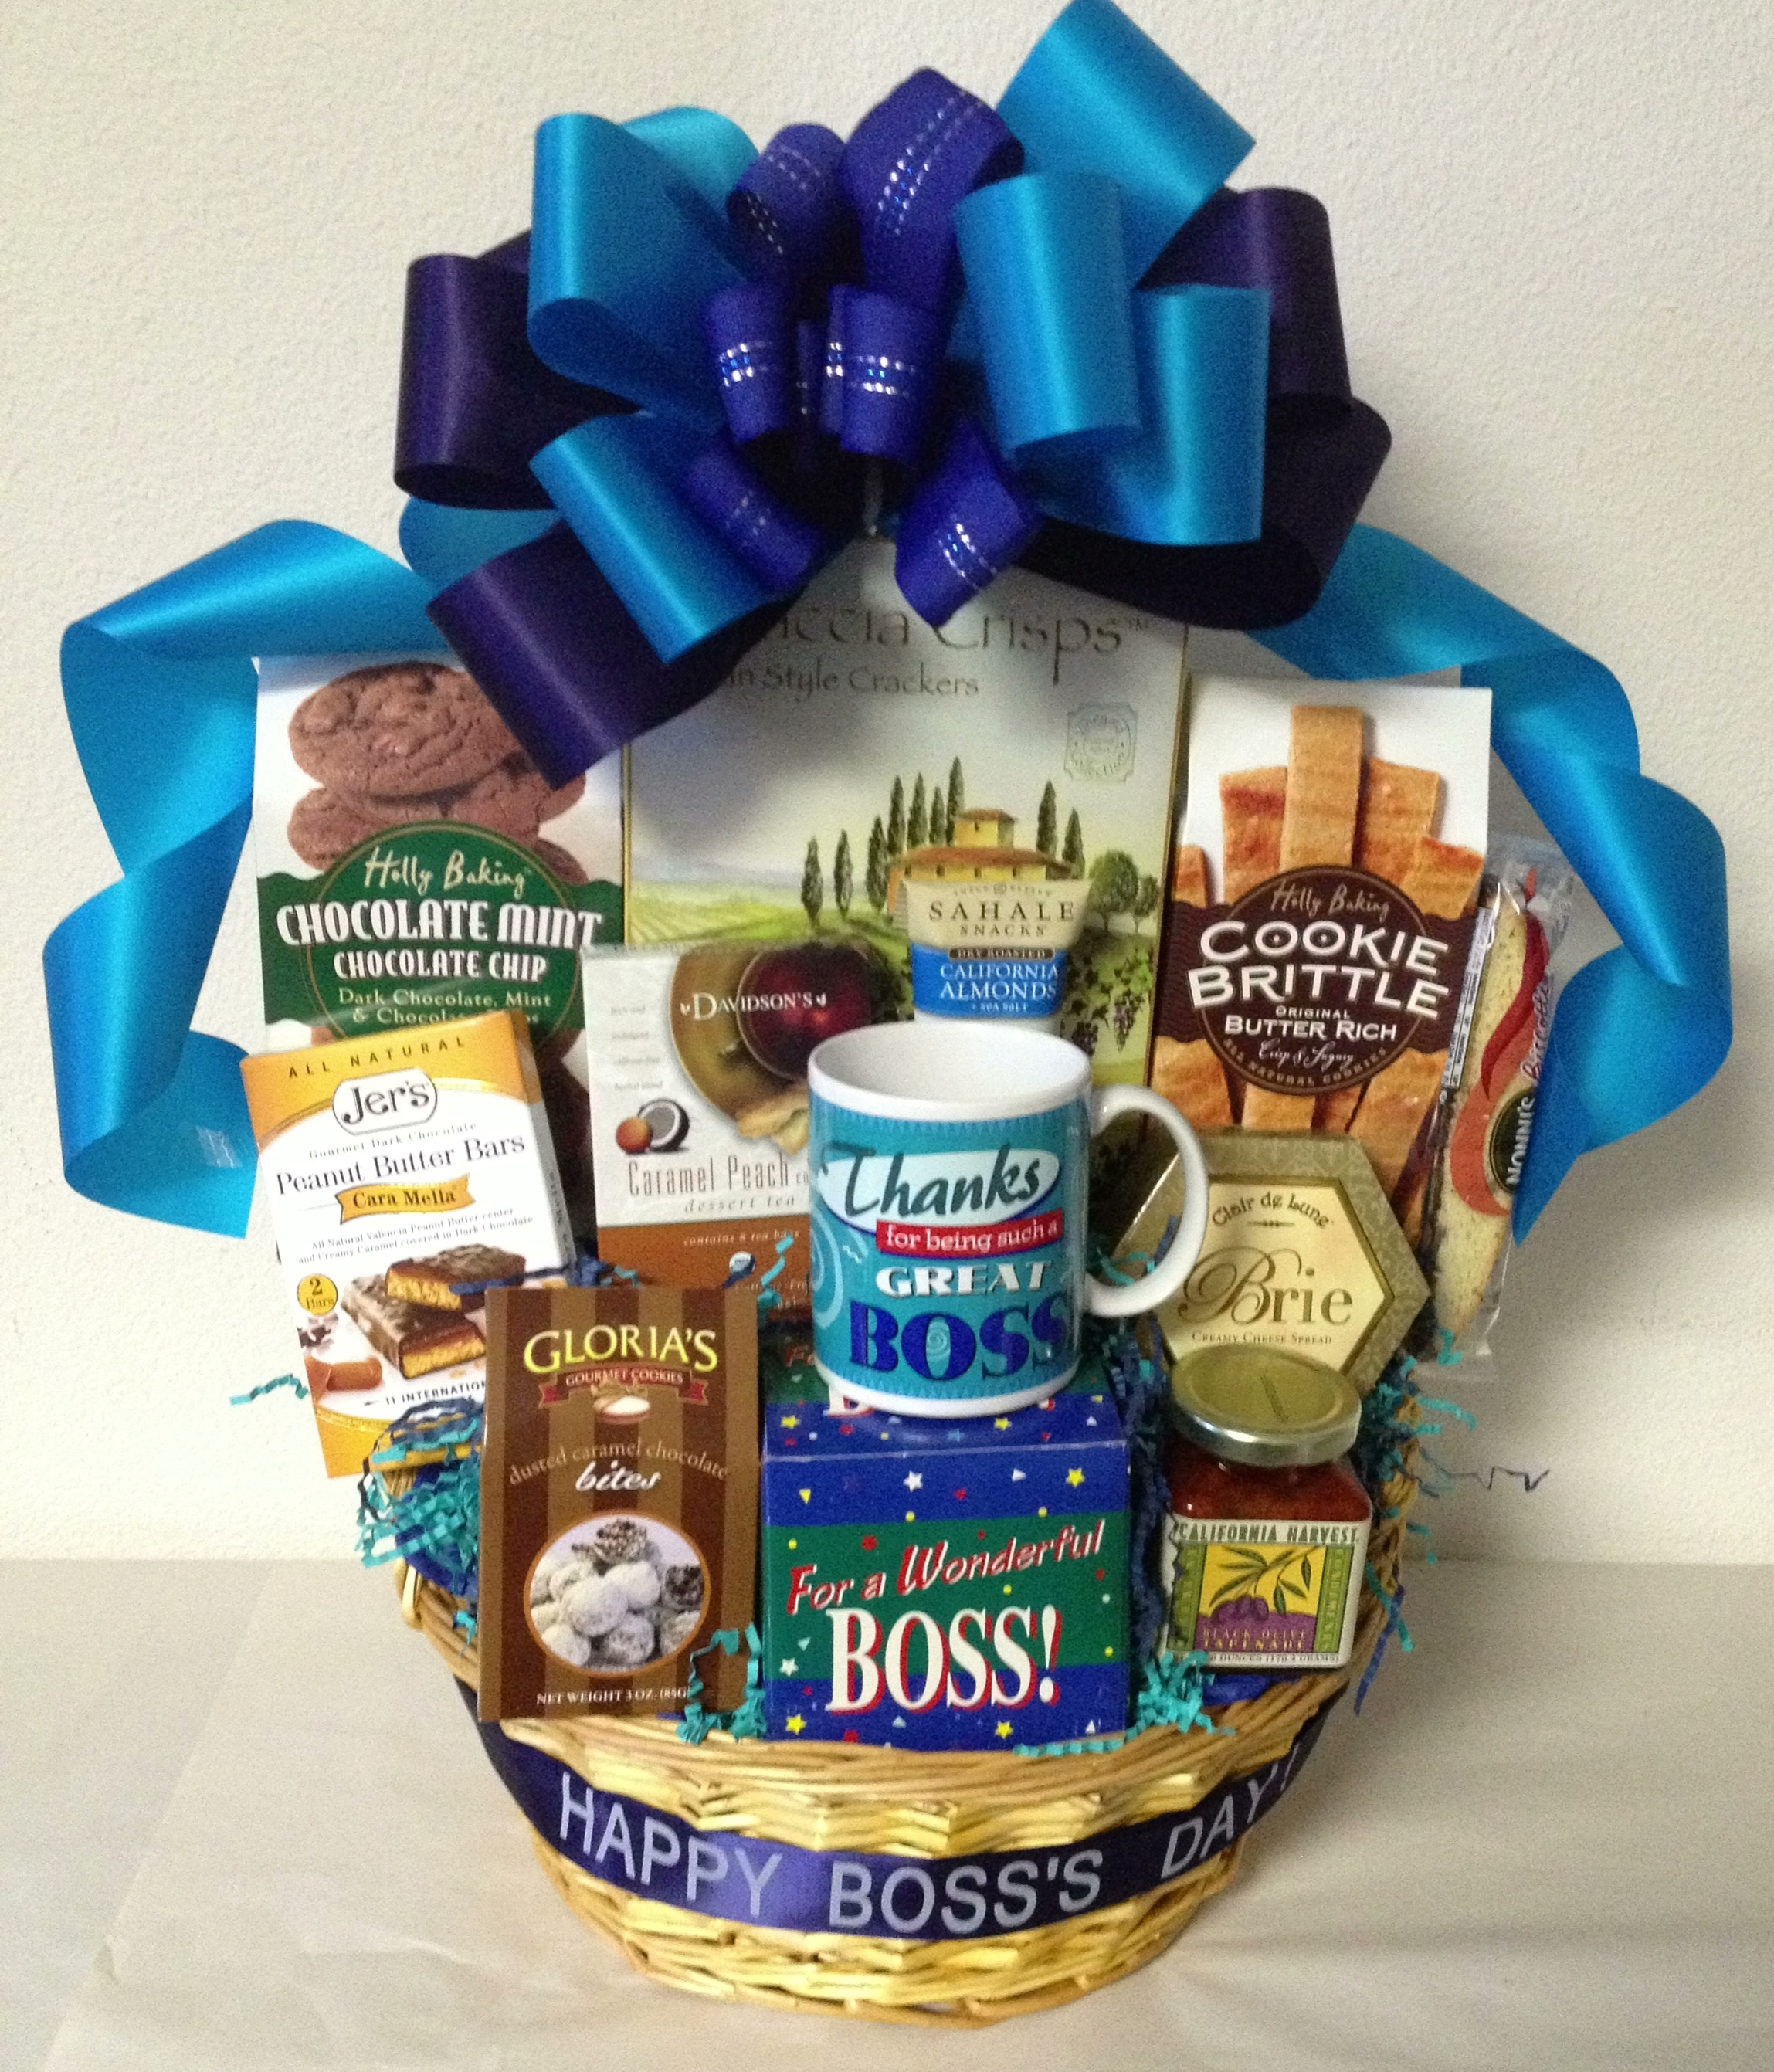 Wedding Gift For Bosss Daughter : Bosss Day Gift Baskets San Diego Gift Basket Creations